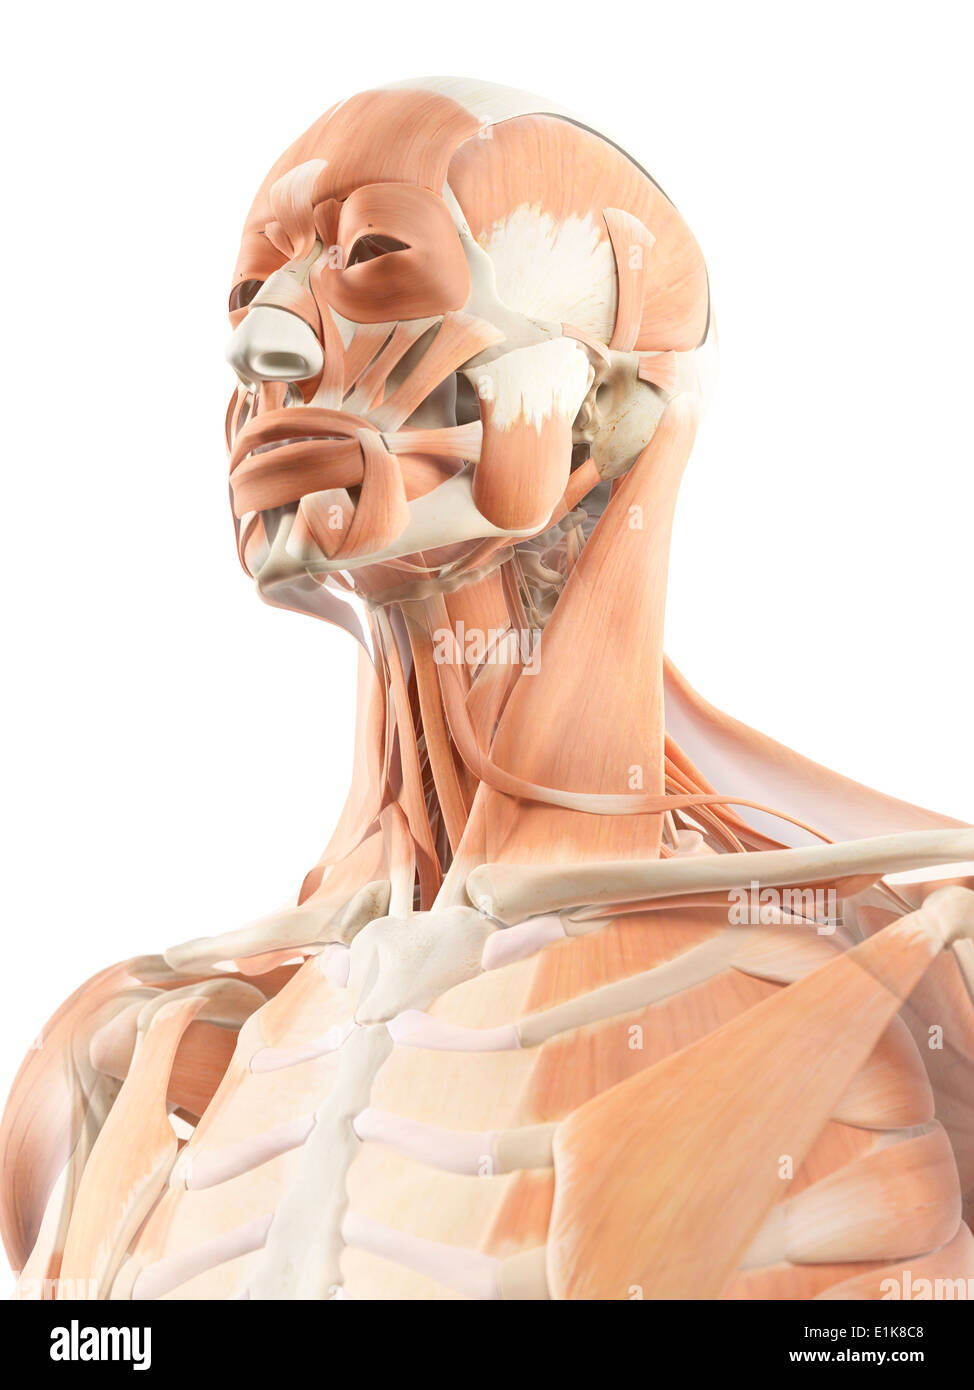 Human Muscular Head Neck Computer Stock Photos & Human Muscular Head ...